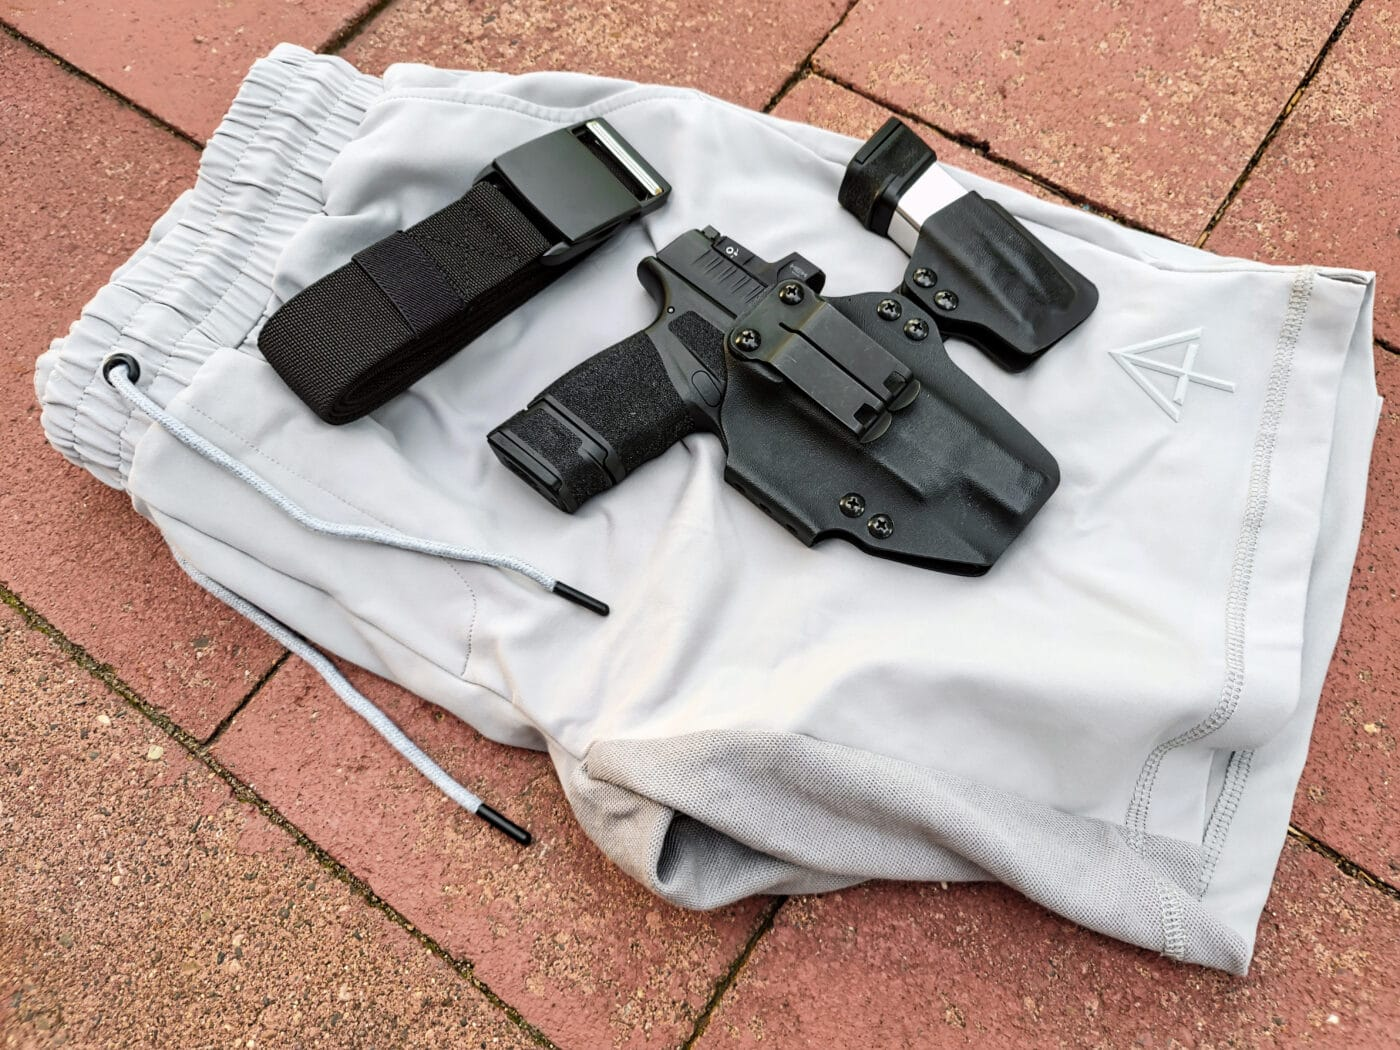 Pistol shown on top of concealed carry shorts